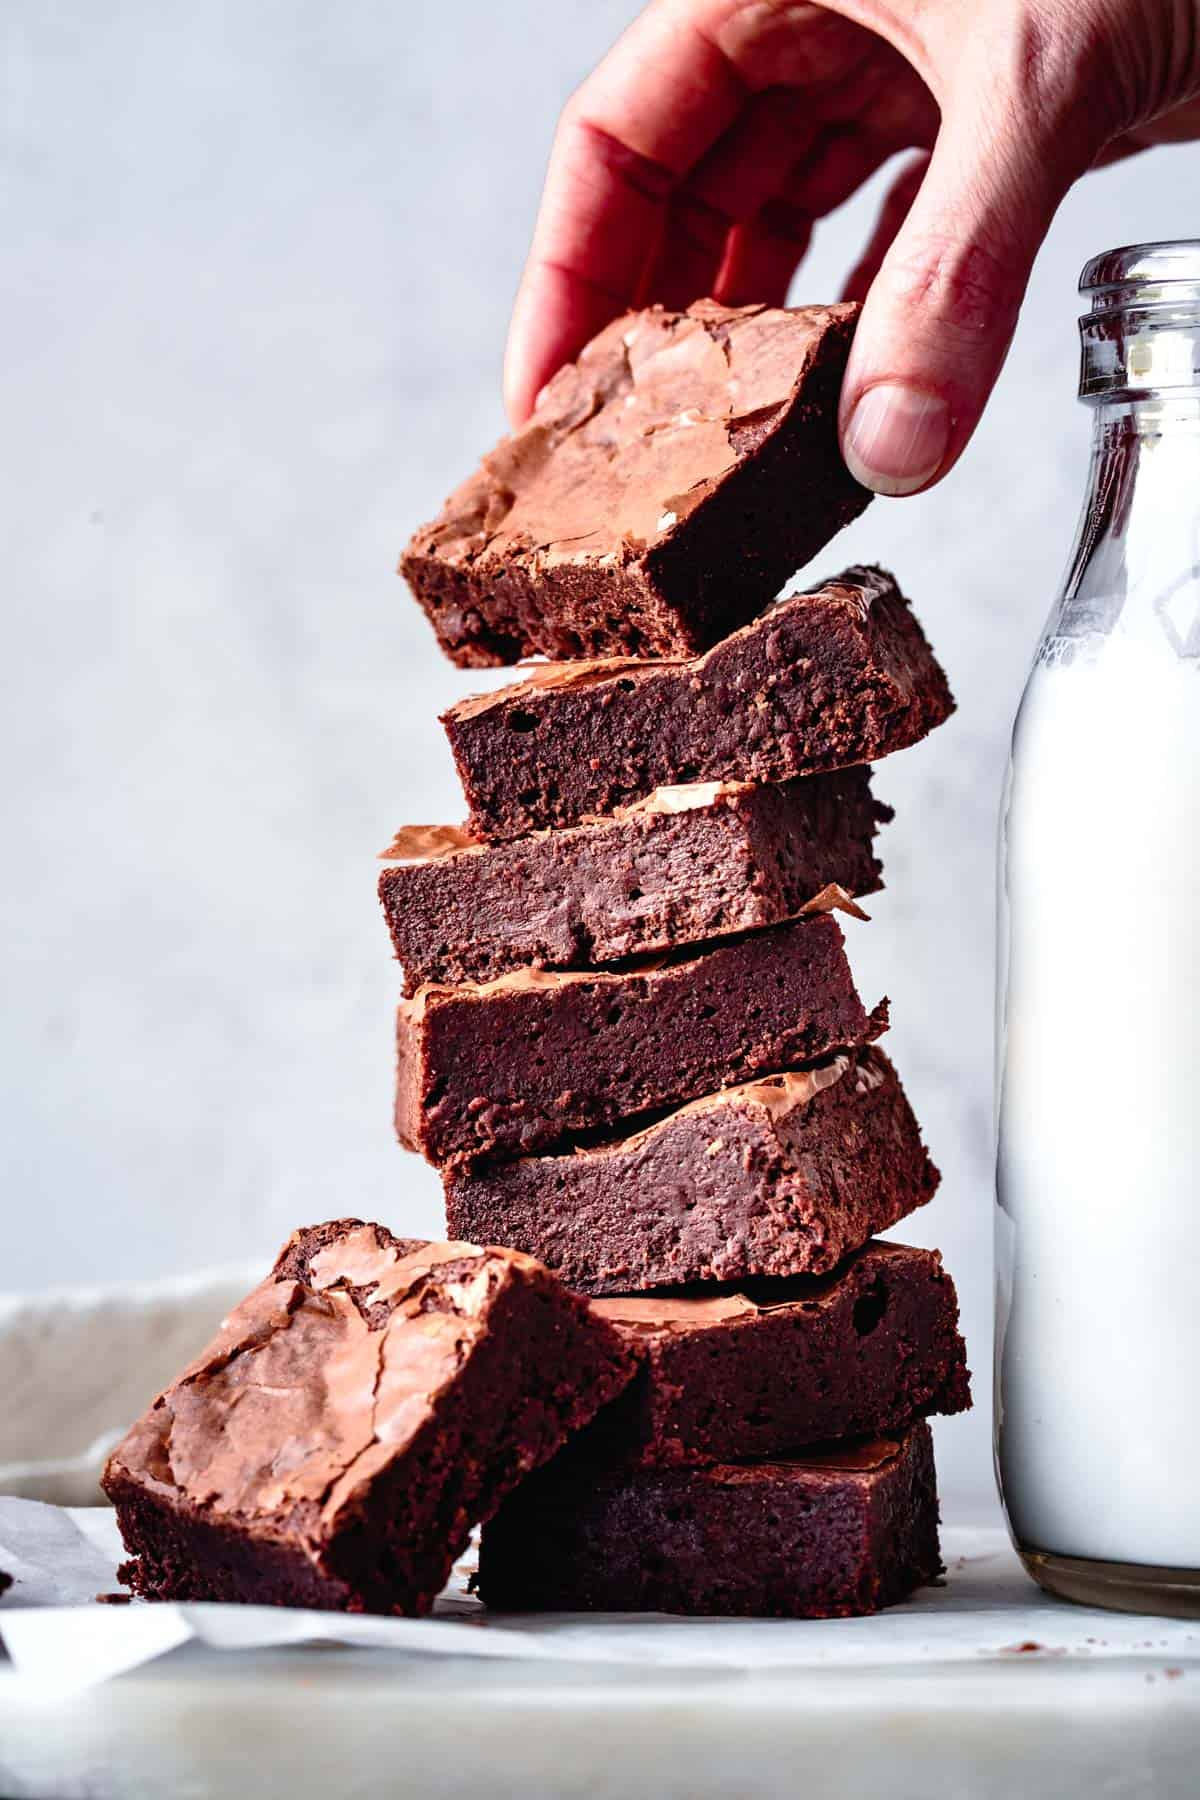 Stack of gluten-free brownies with a hand lifting the top brownie